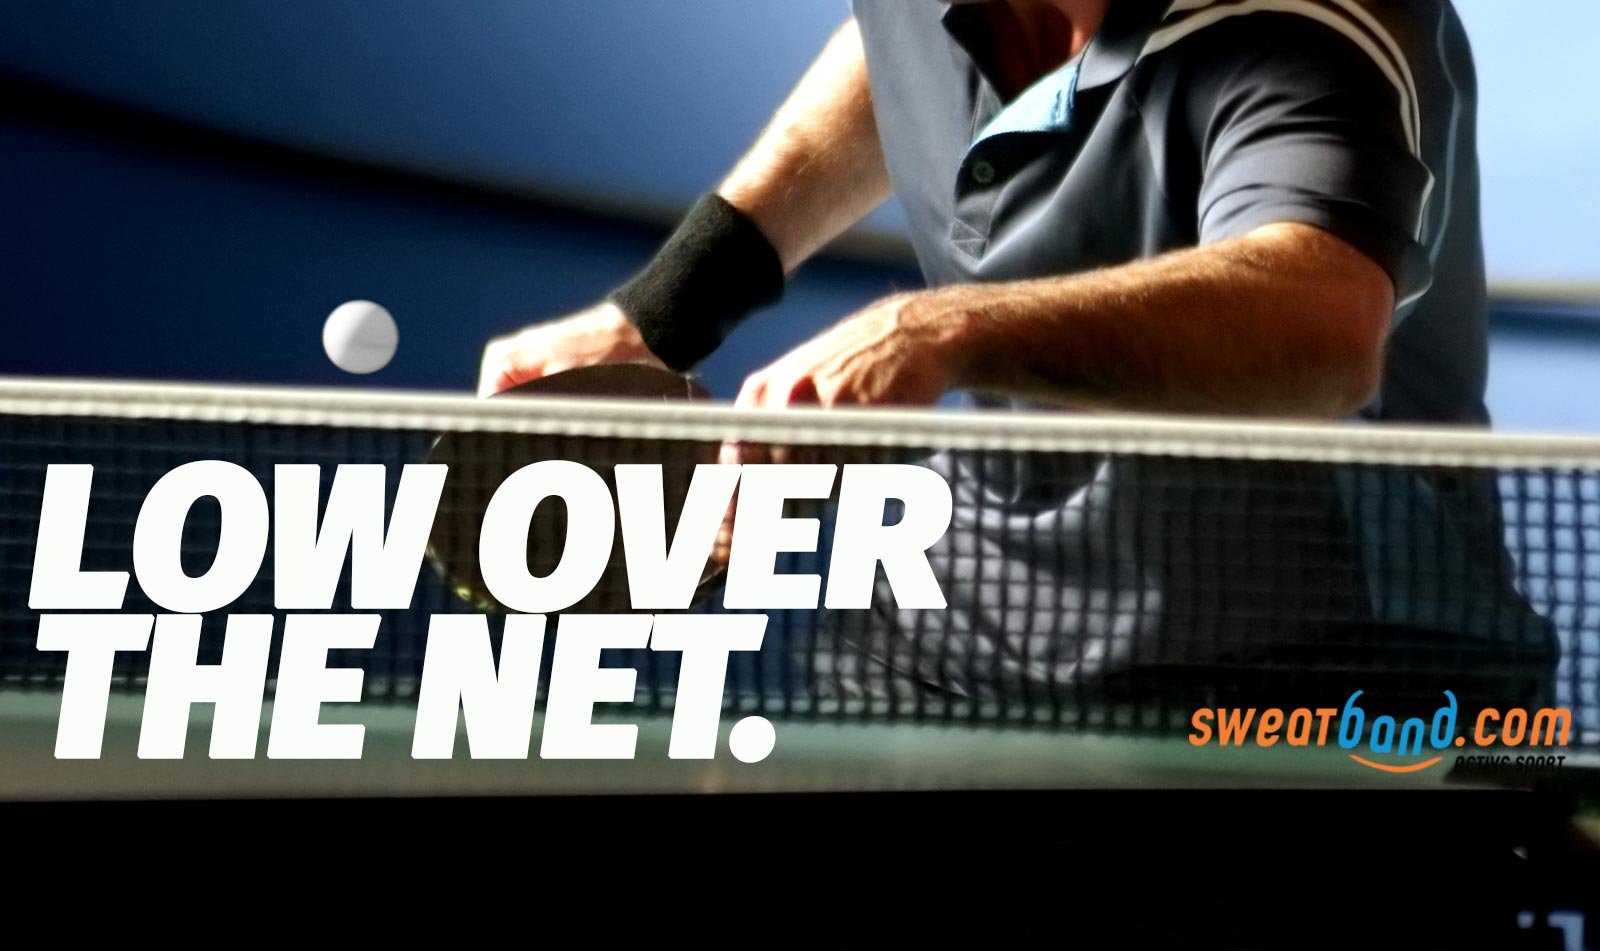 Aim low over the net and cut off the angles for your table tennis opponent